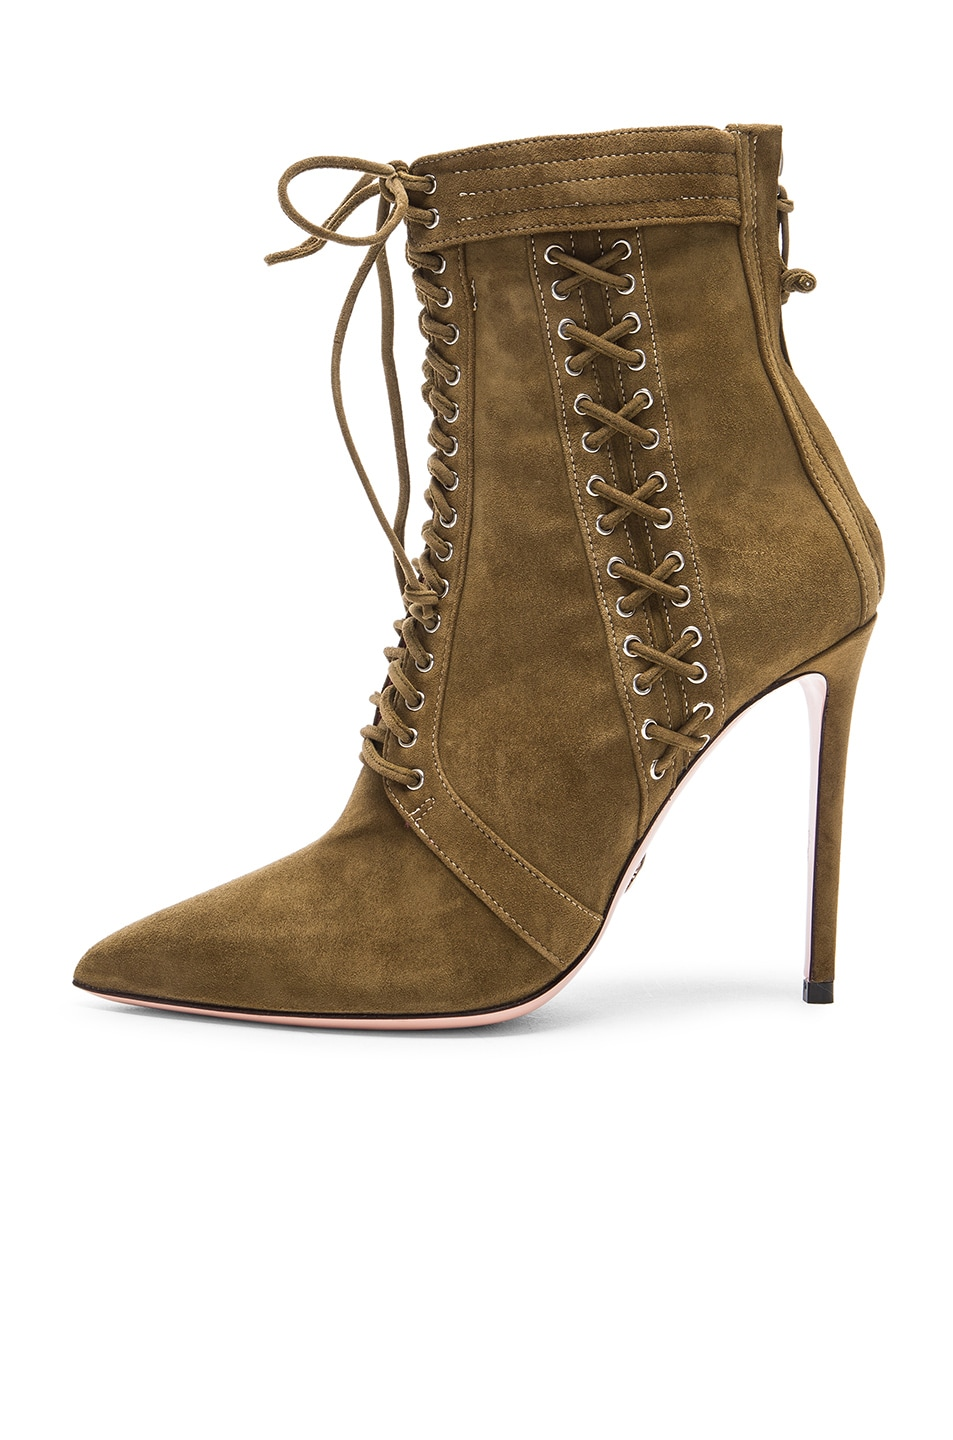 Image 5 of Oscar Tiye Samira Suede Booties in Military